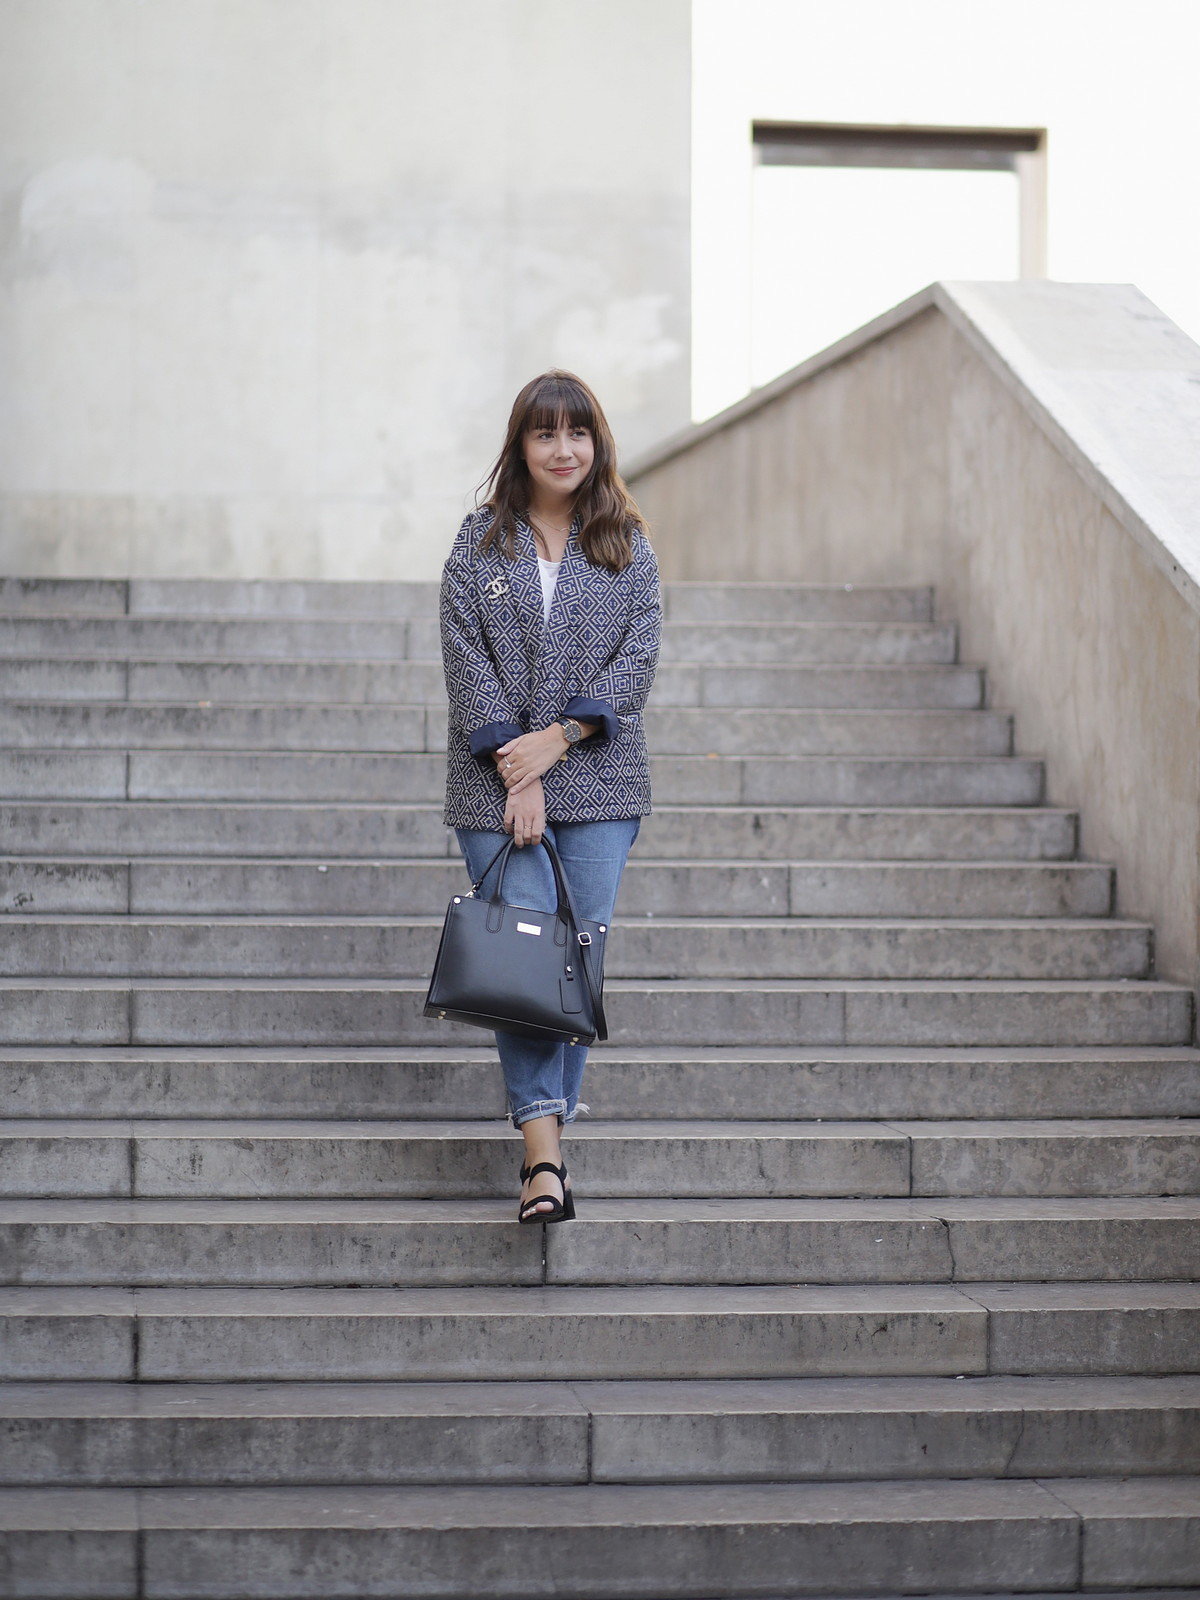 look rentrée - casual chic - blazer on parle de vous - back to school - mom jean - chanel - du style madame